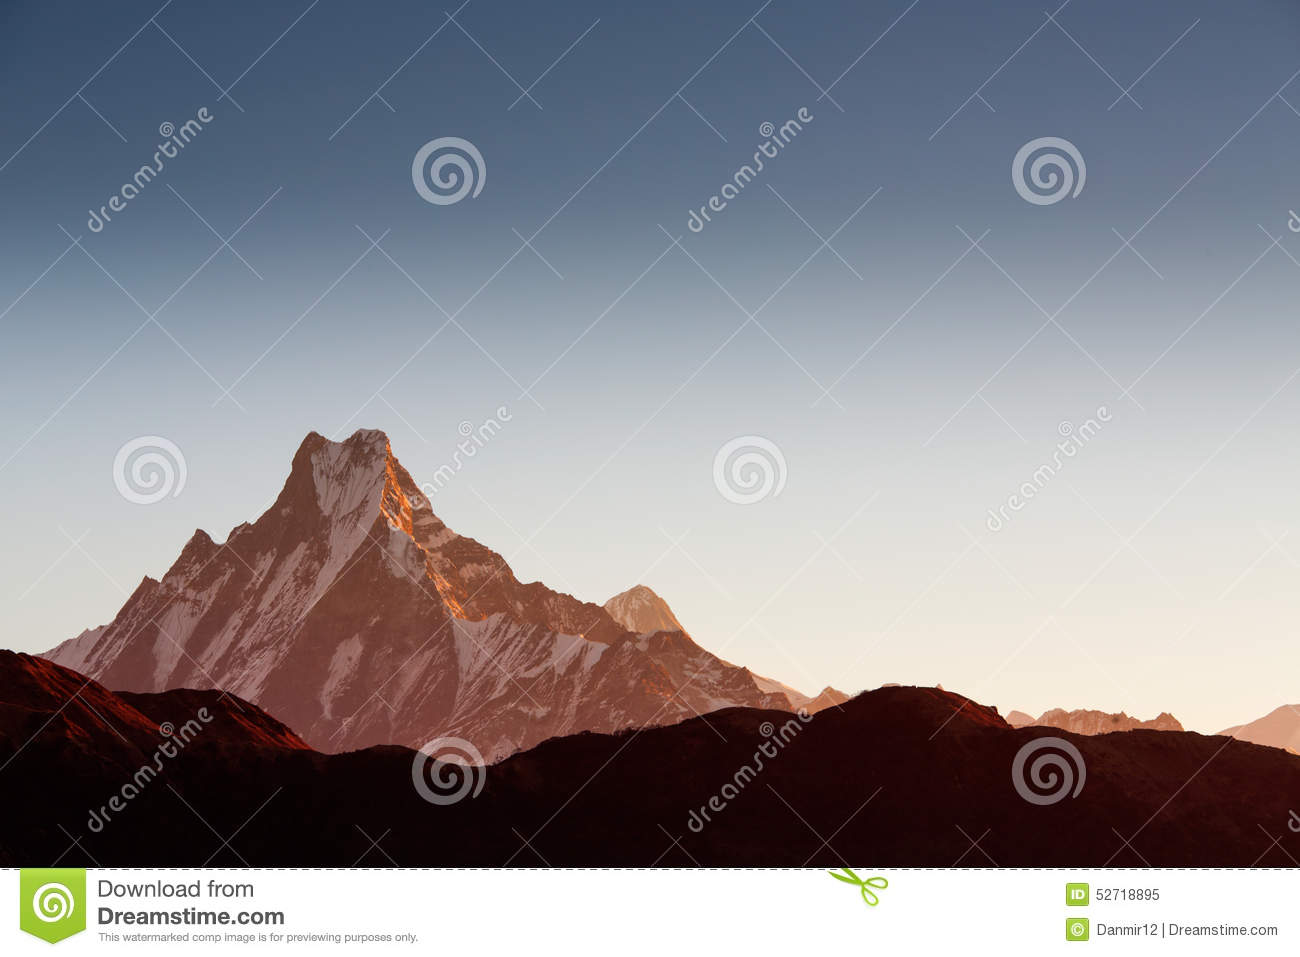 Machhapuchchhre mountain - Fish Tail in English is a mountain in